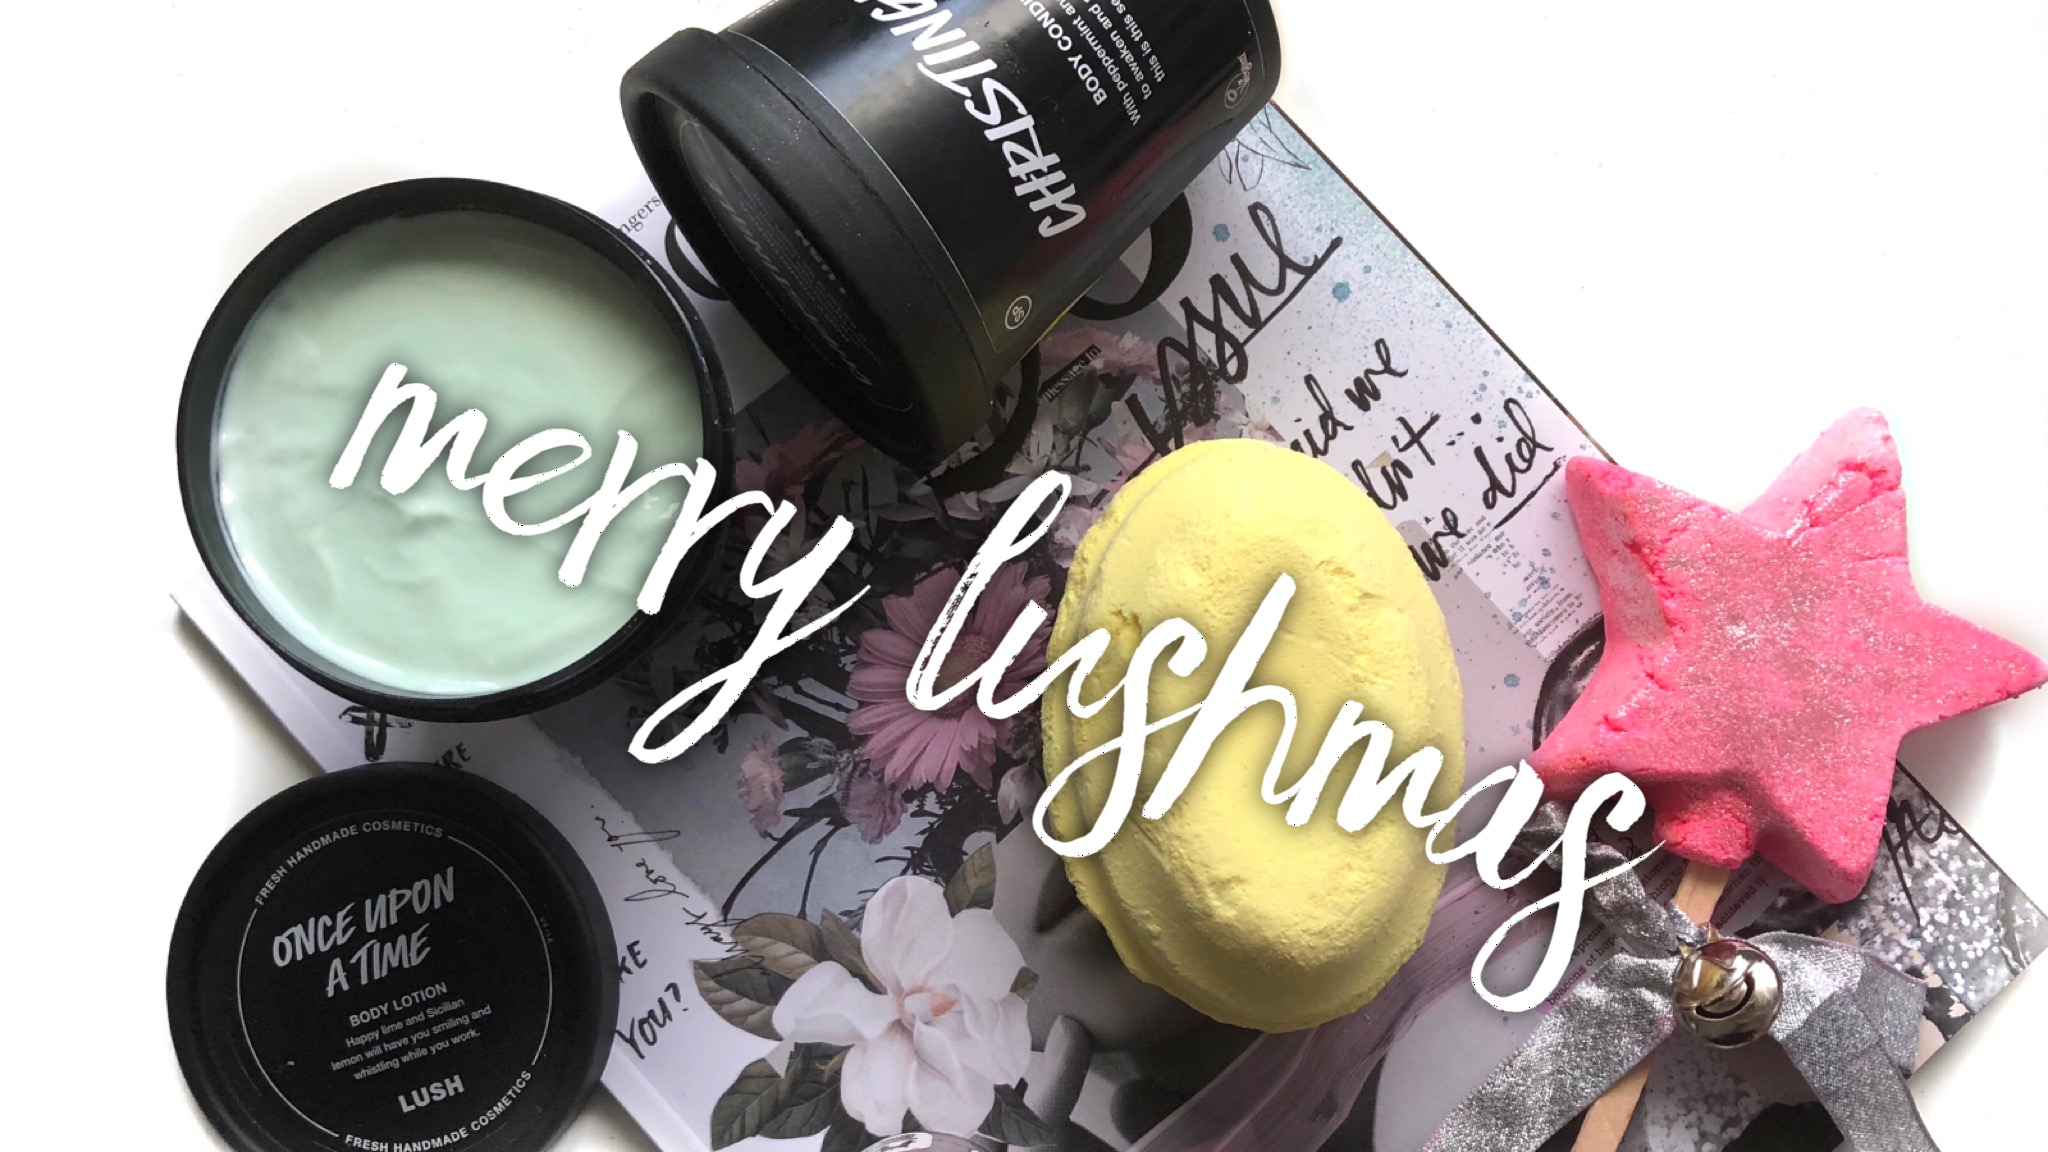 MERRY LUSHMAS from LUSH!